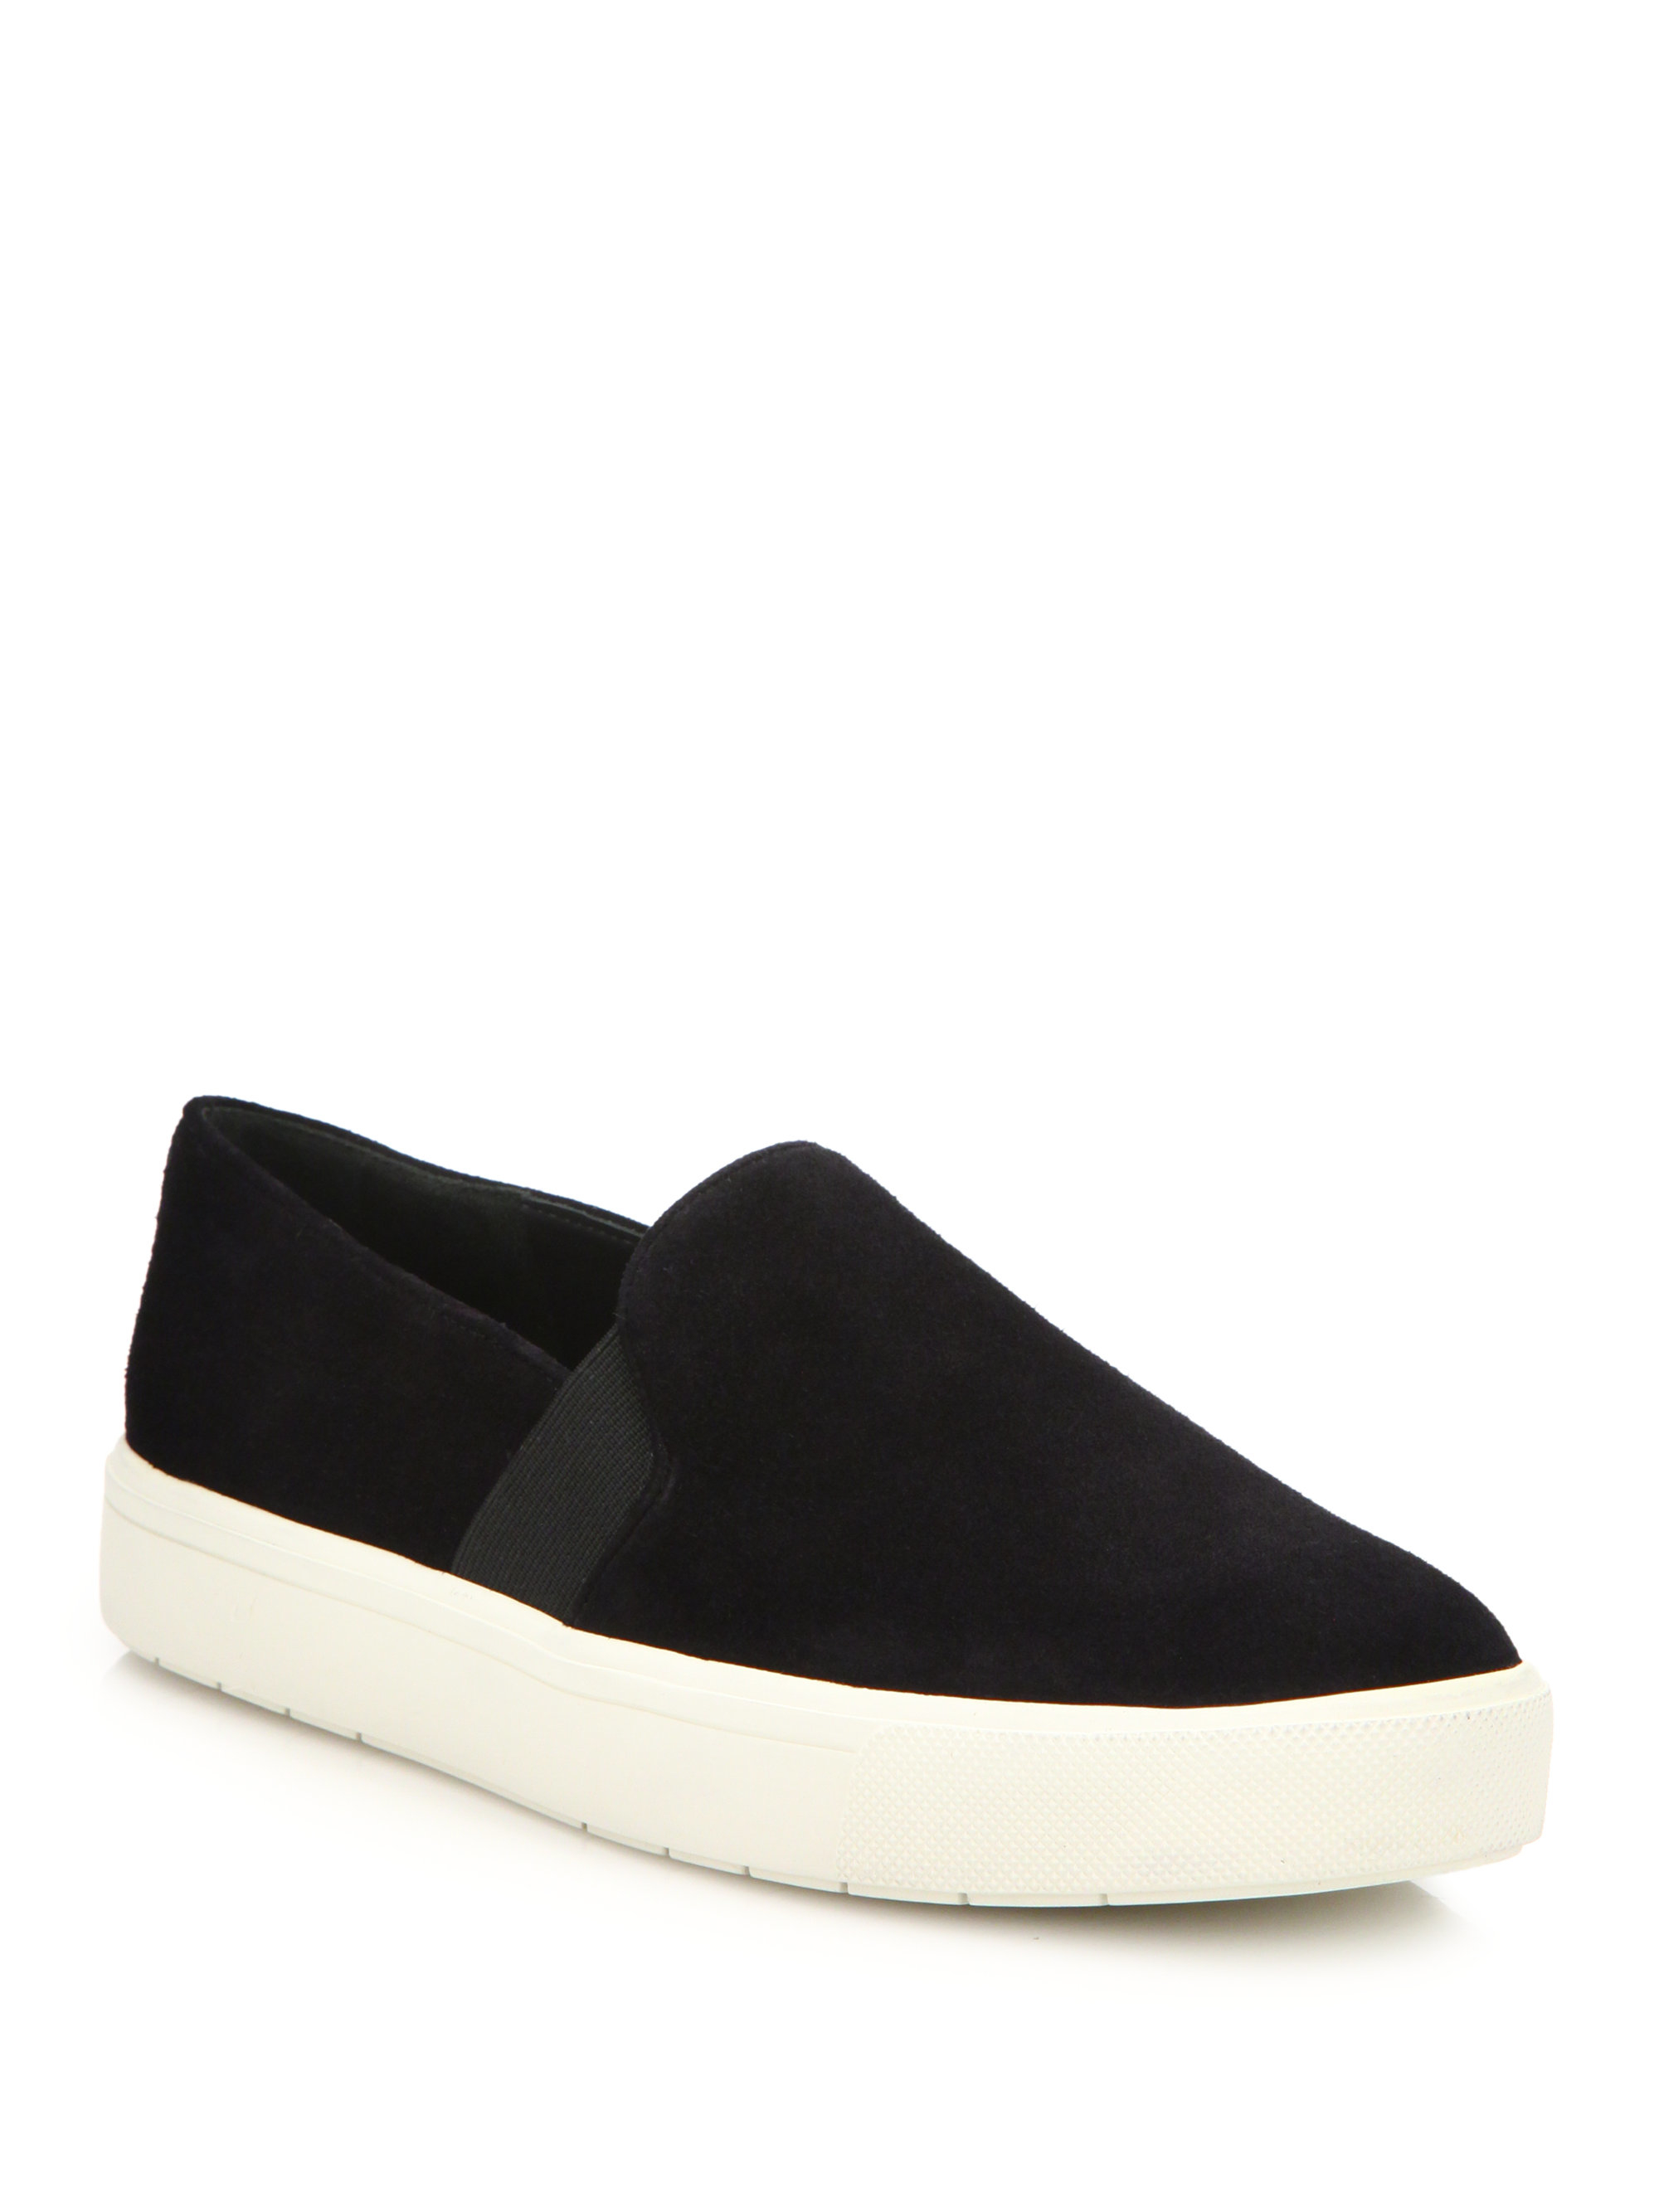 Vince Berlin Suede Slip On Sneakers In Black Lyst